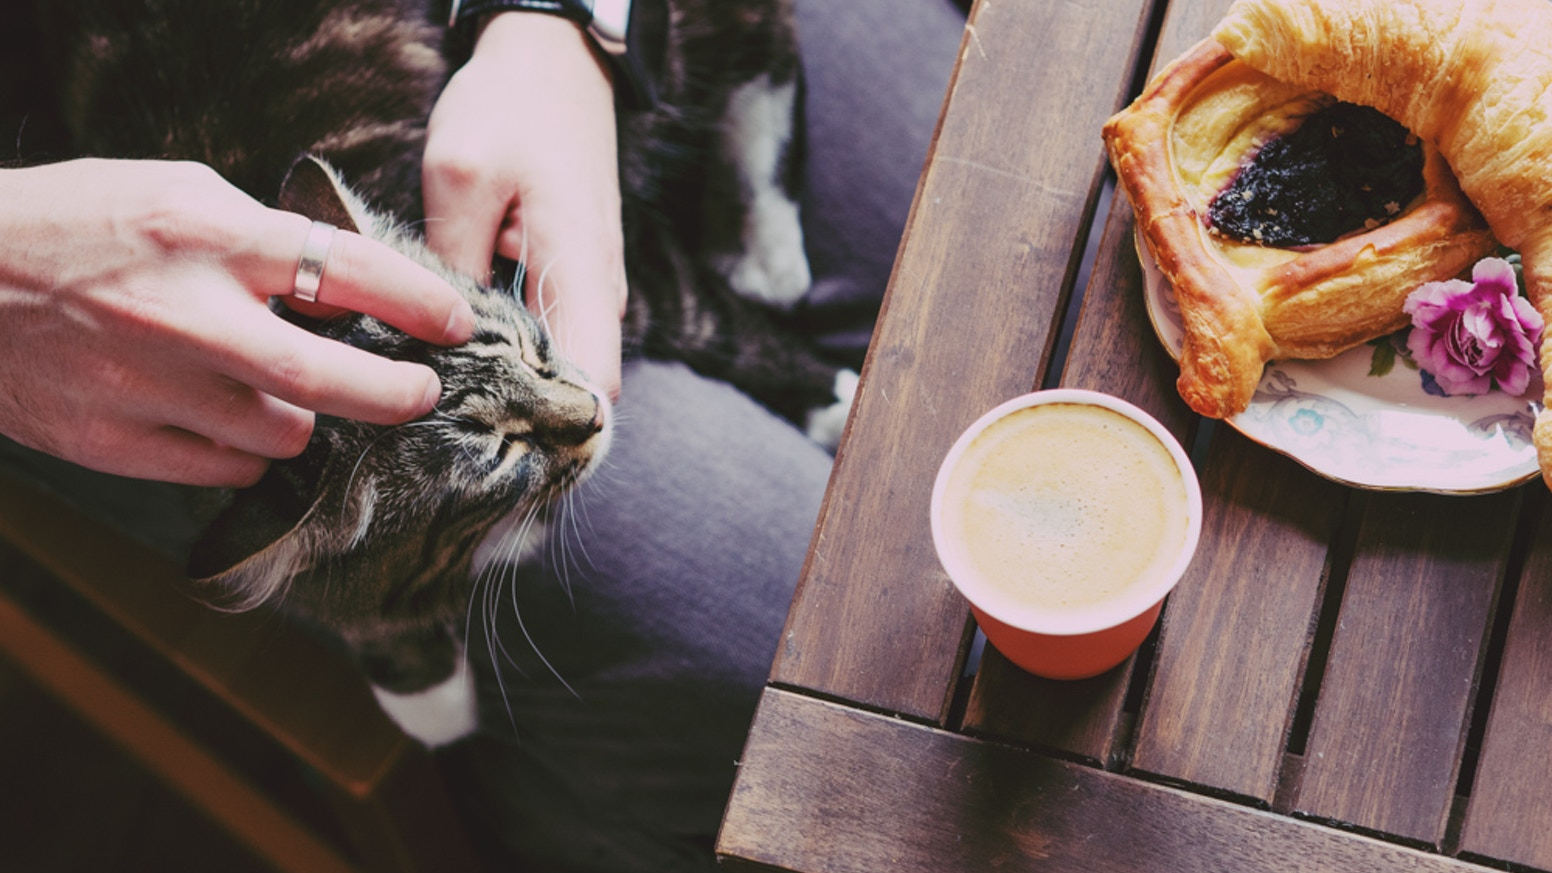 Help create the purrfect place to sip a coffee and play with adorable rescue cats!